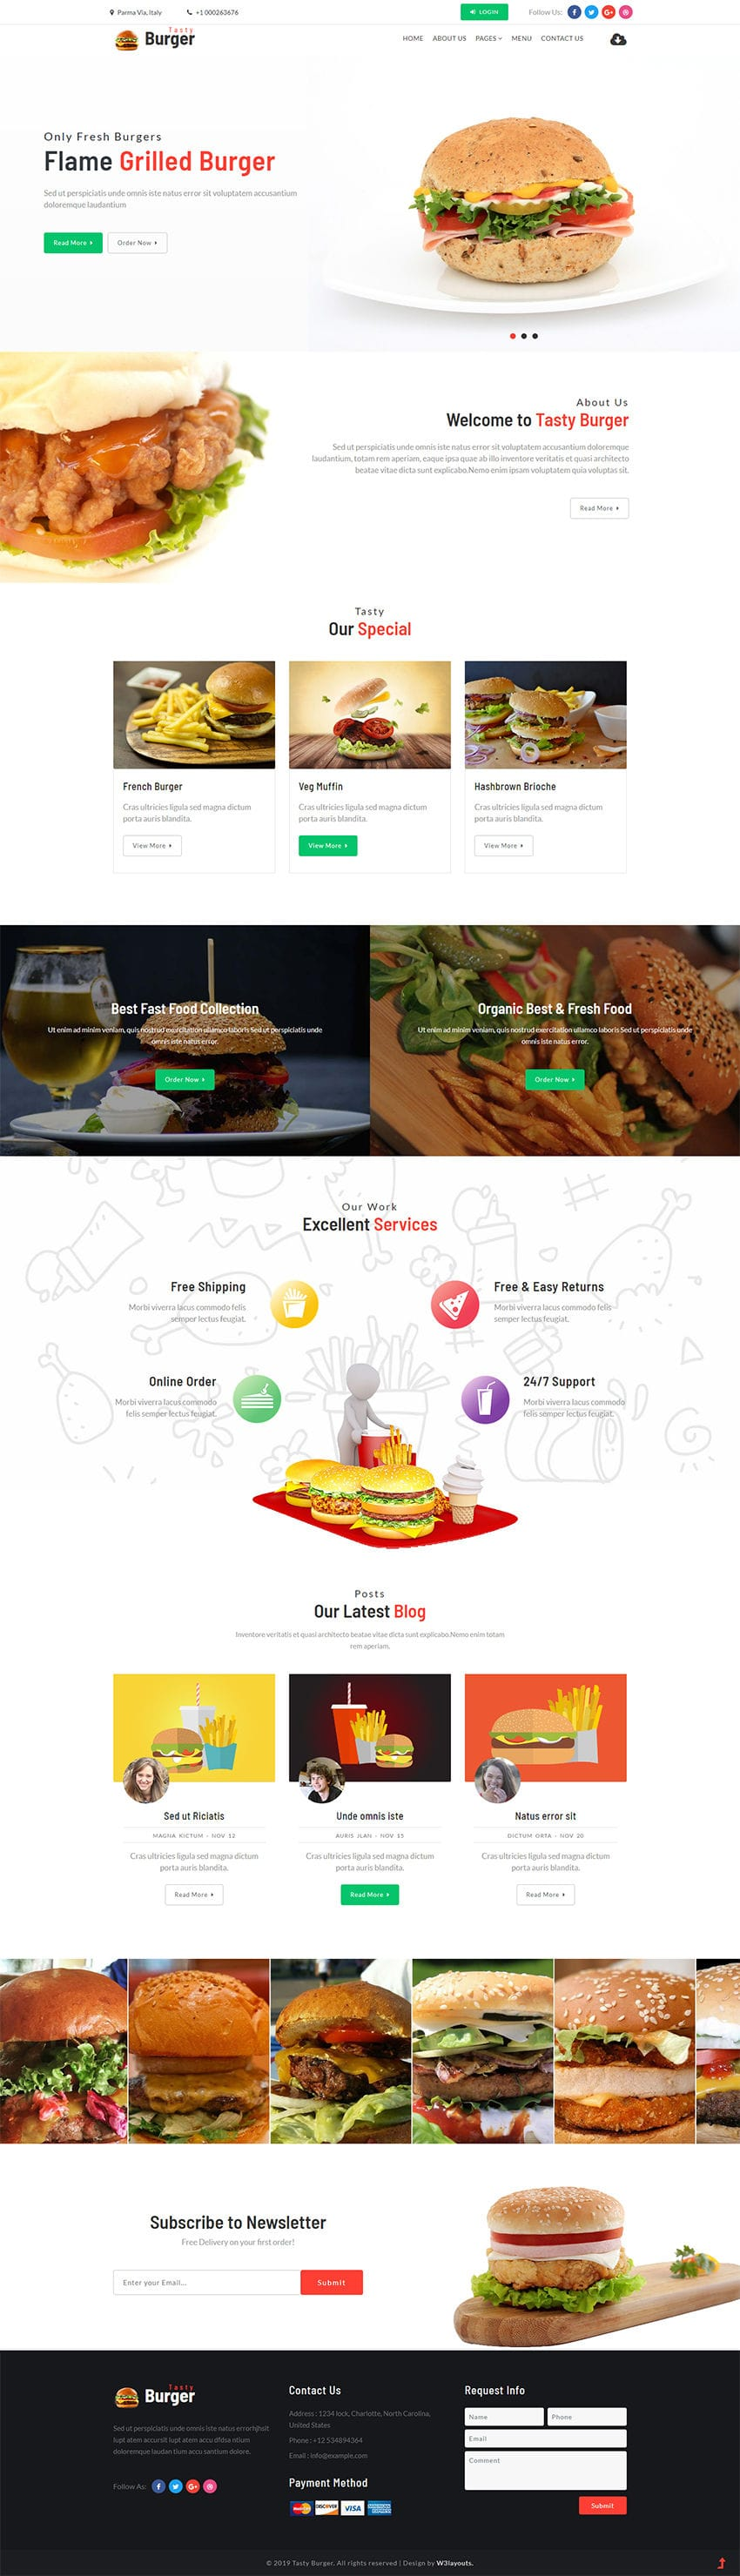 Tasty Burger is a website template built on Bootstrap using HTML suitable for all restaurant and food businesses.